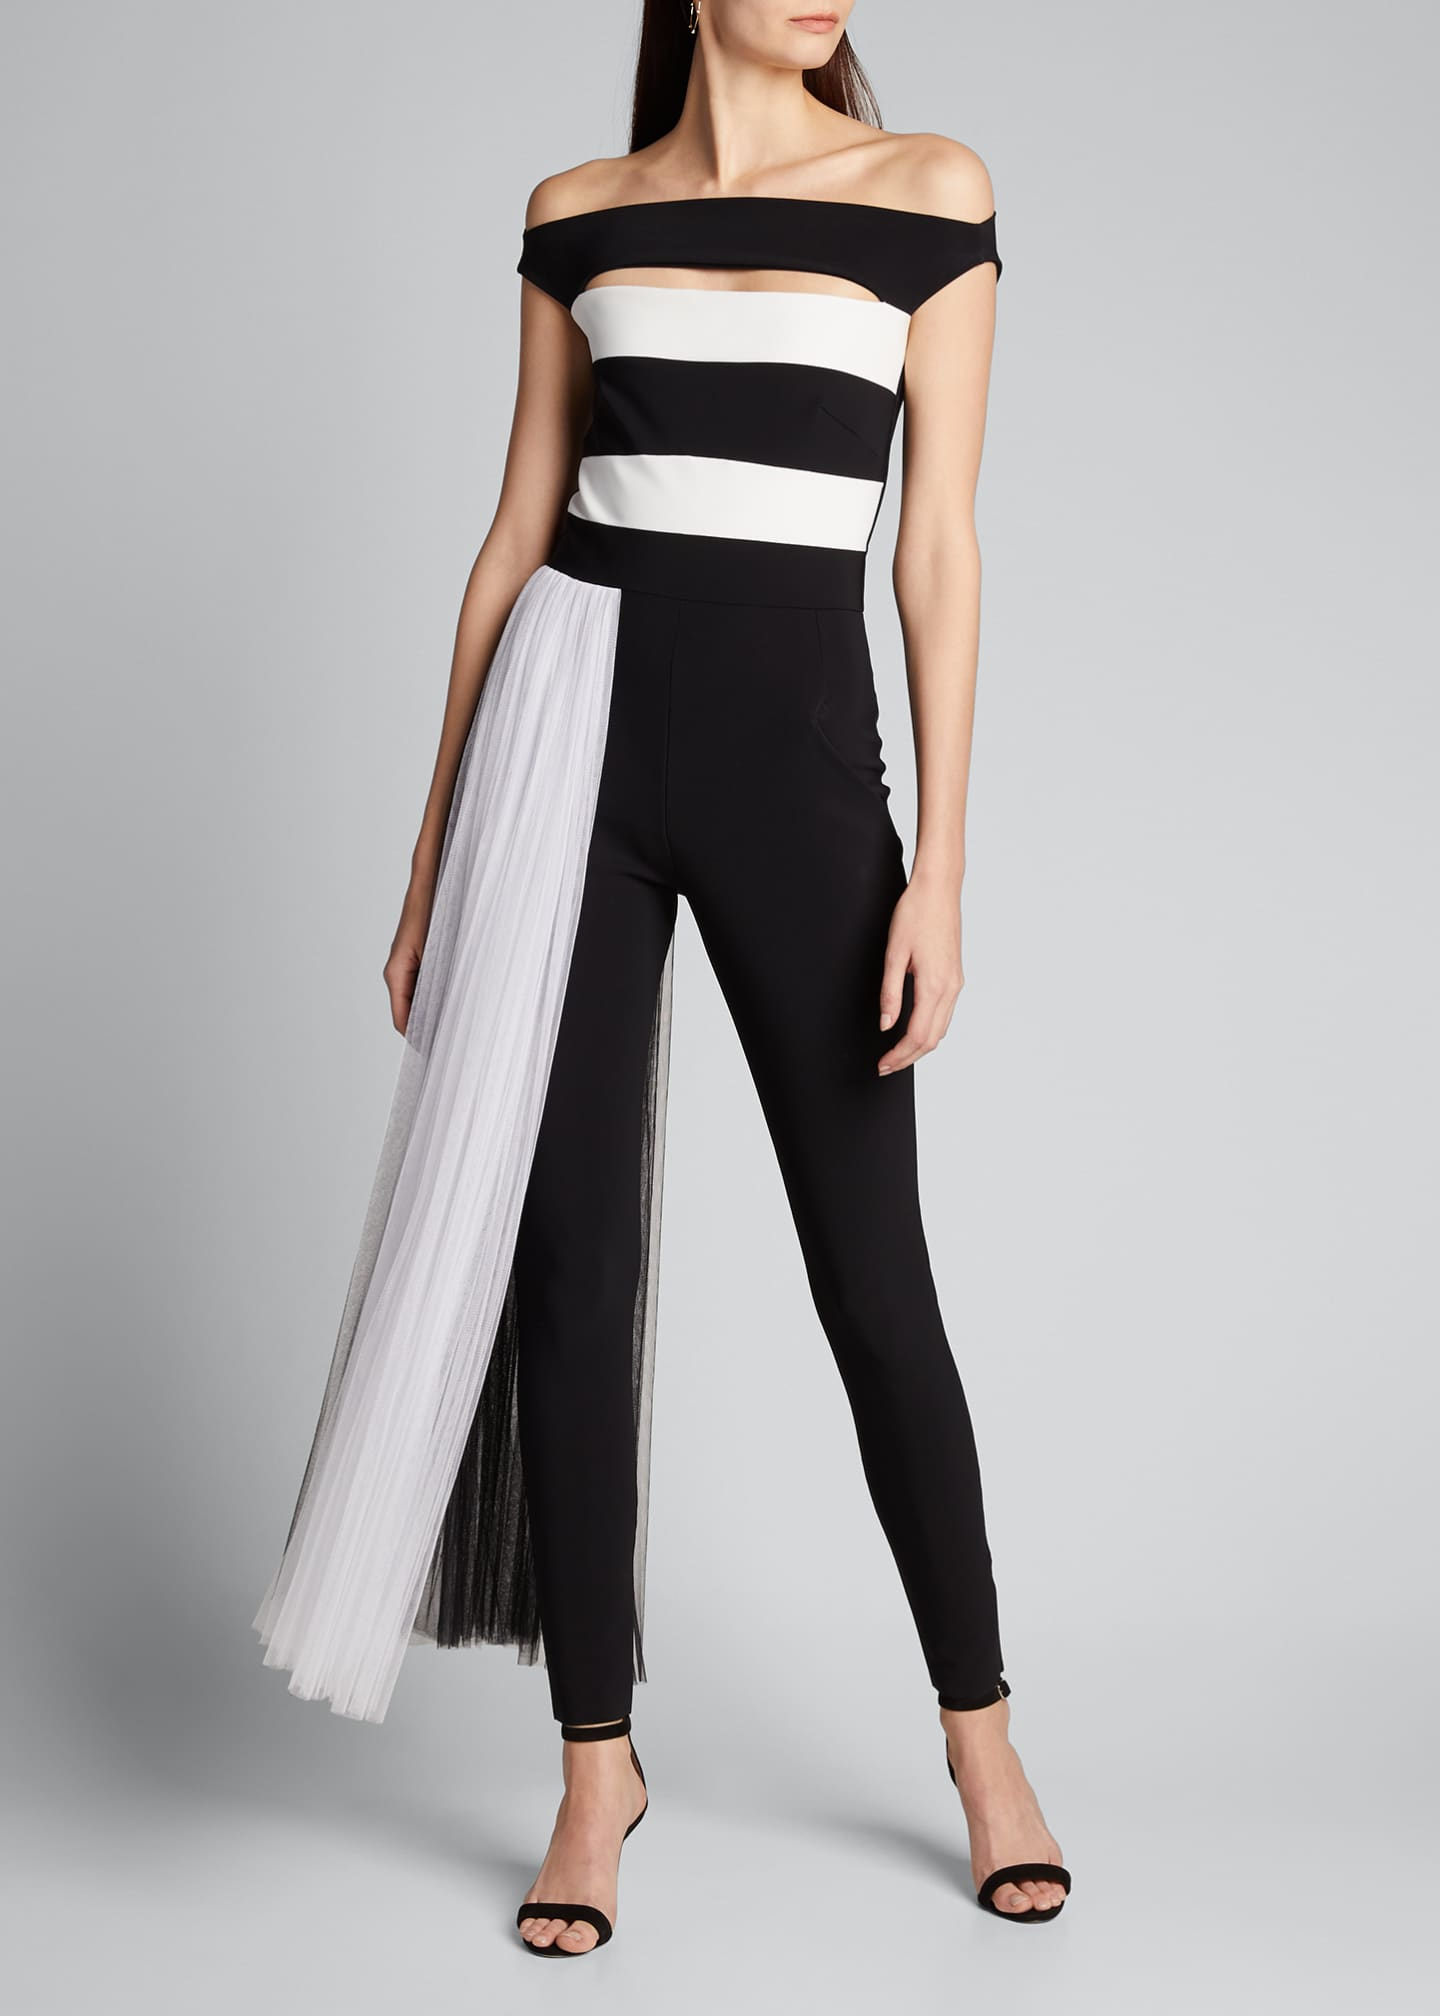 Image 3 of 5: Mar Two-Tone Off-the-Shoulder Jumpsuit w/ Illusion Waist Train